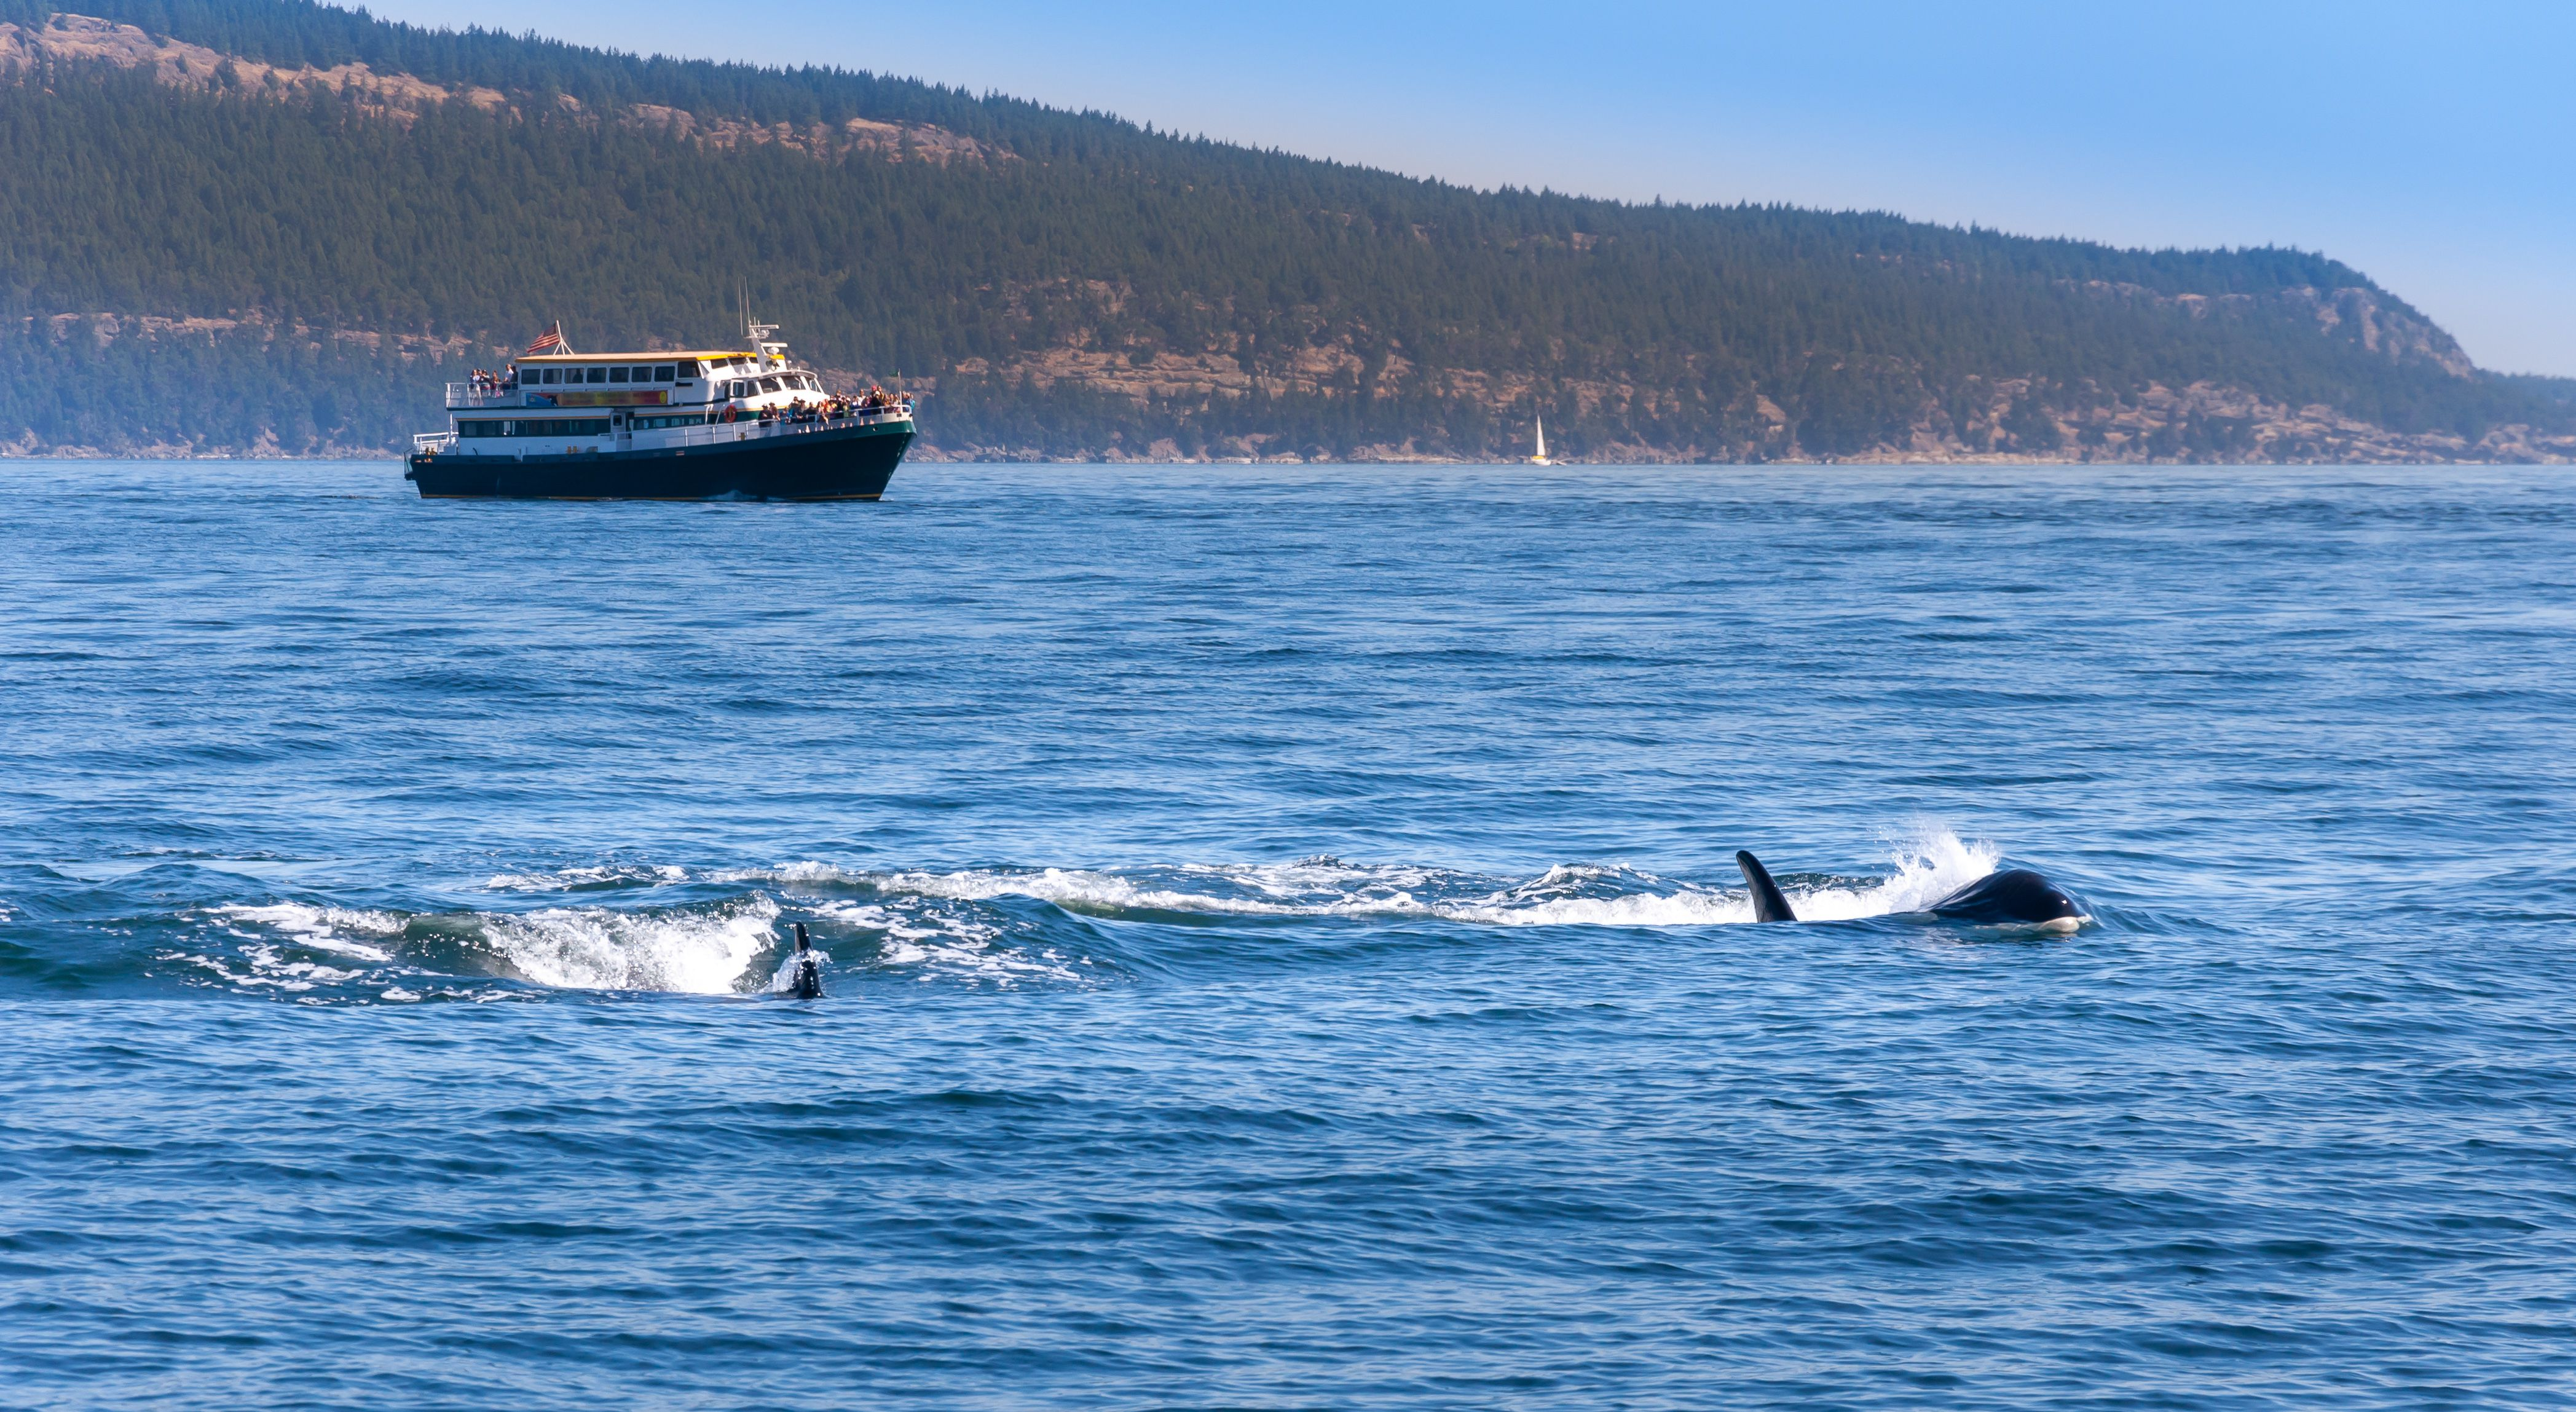 Two Orca whales near Vancouver Island, Canada. A whale watching boat is in the background.